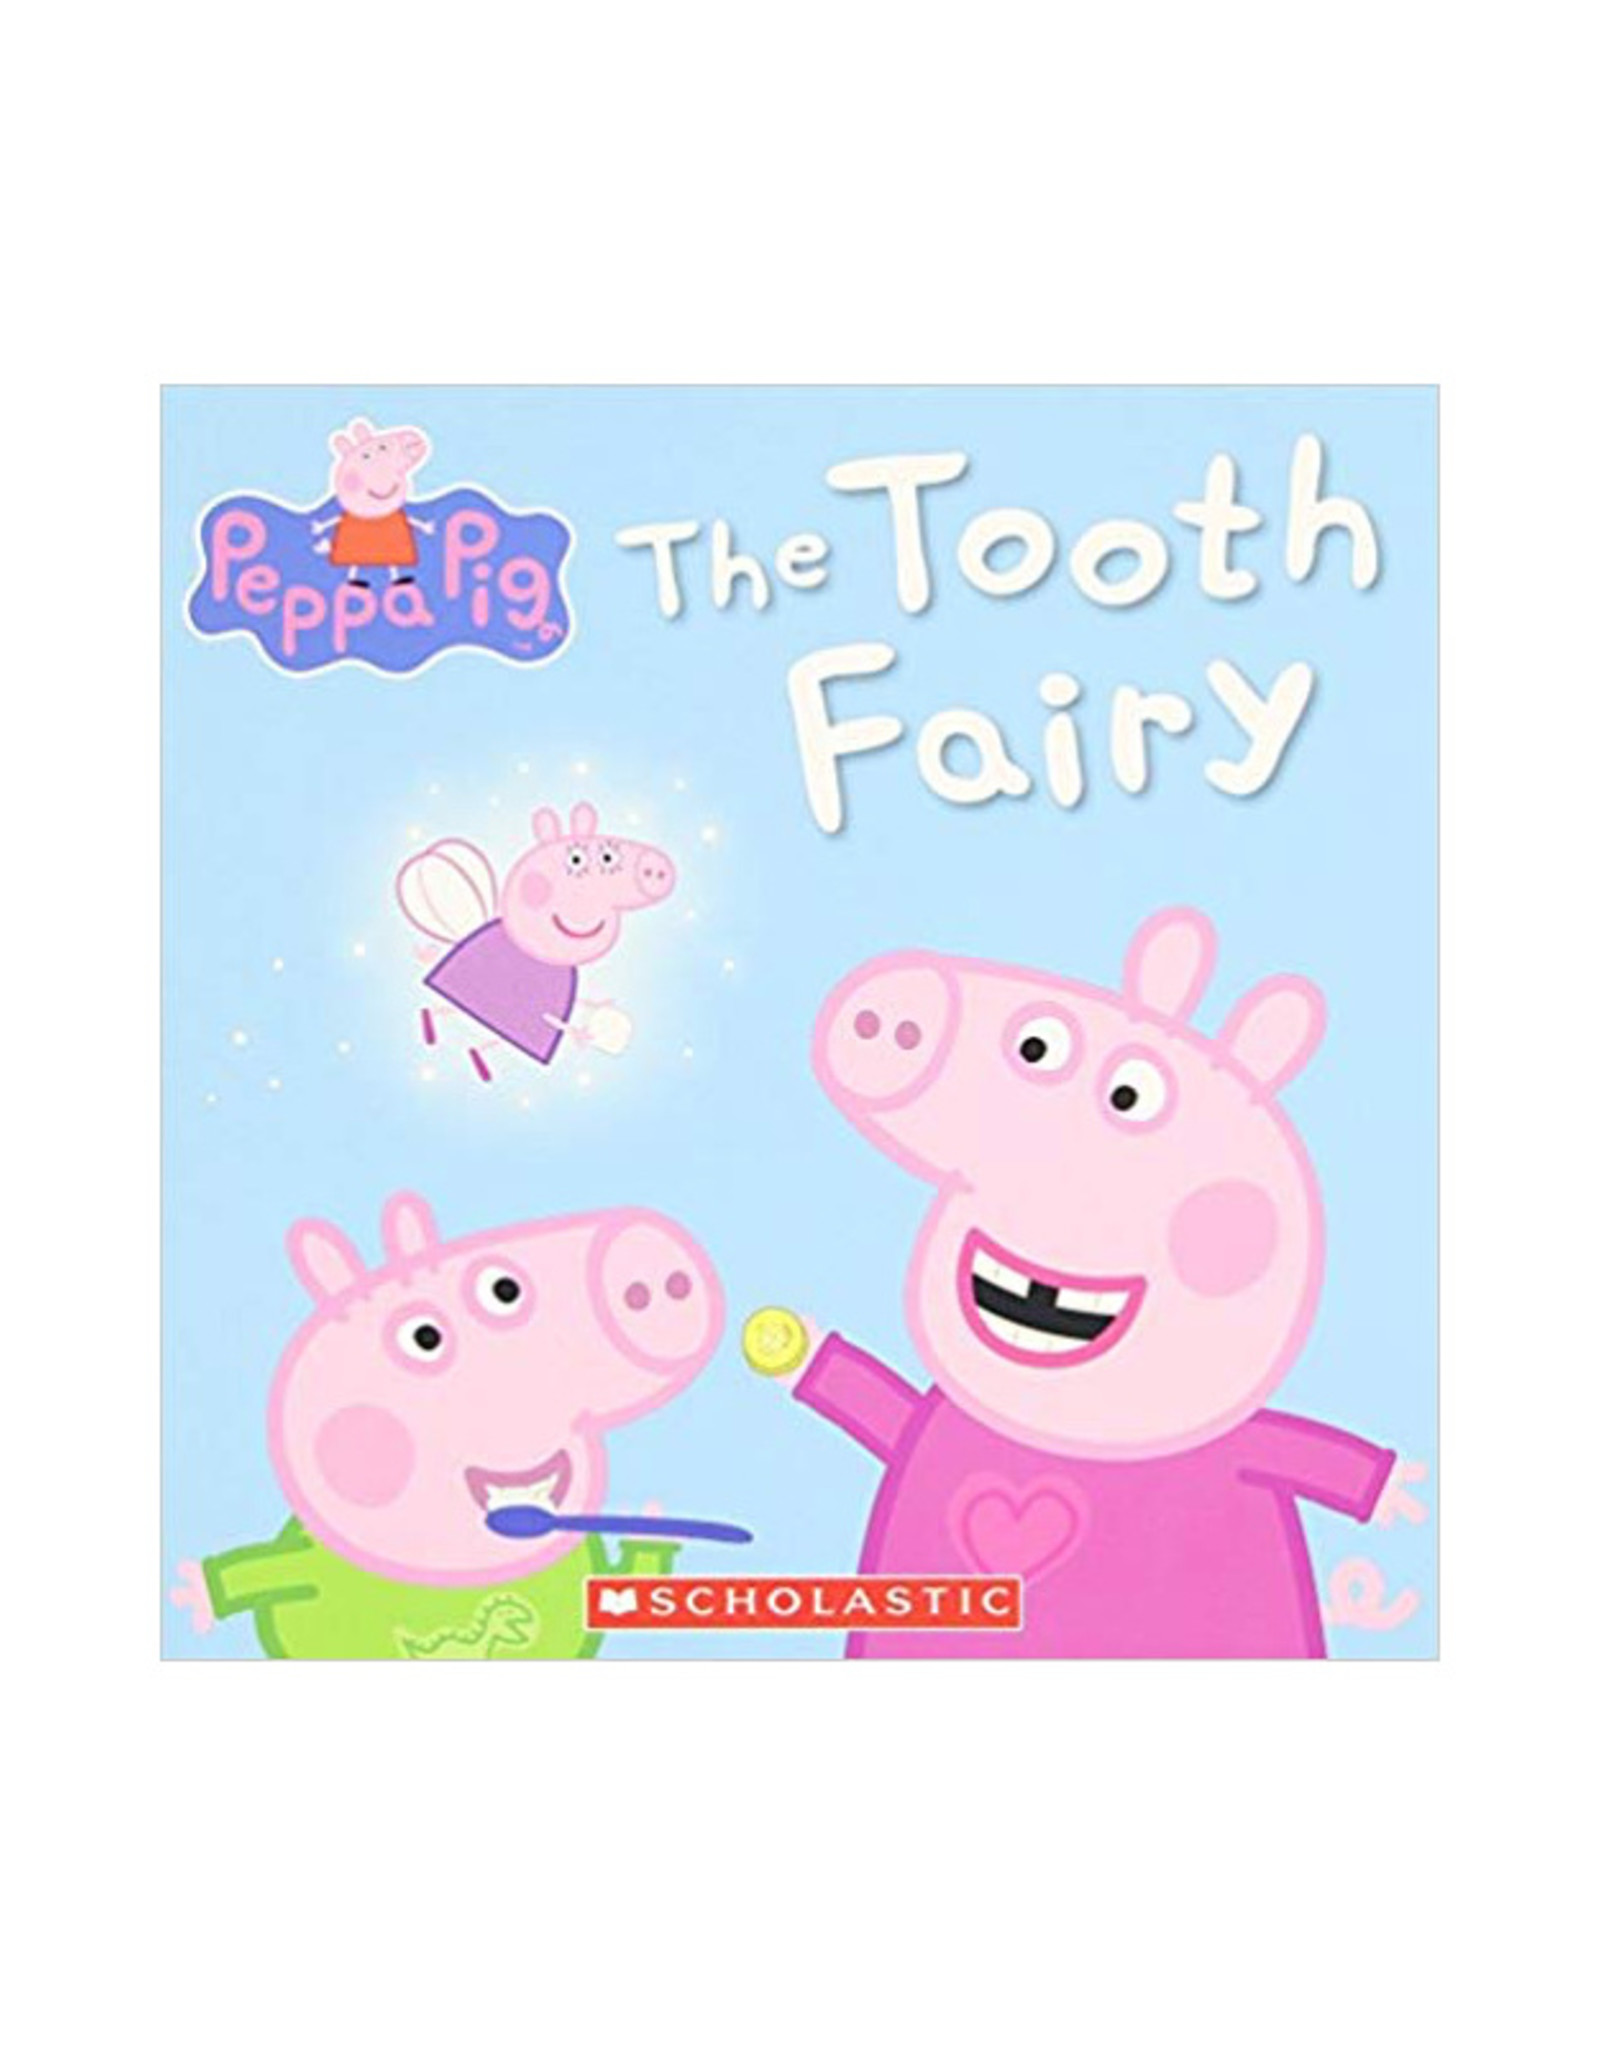 Scholastic Peppa Pig: The Tooth Fairy